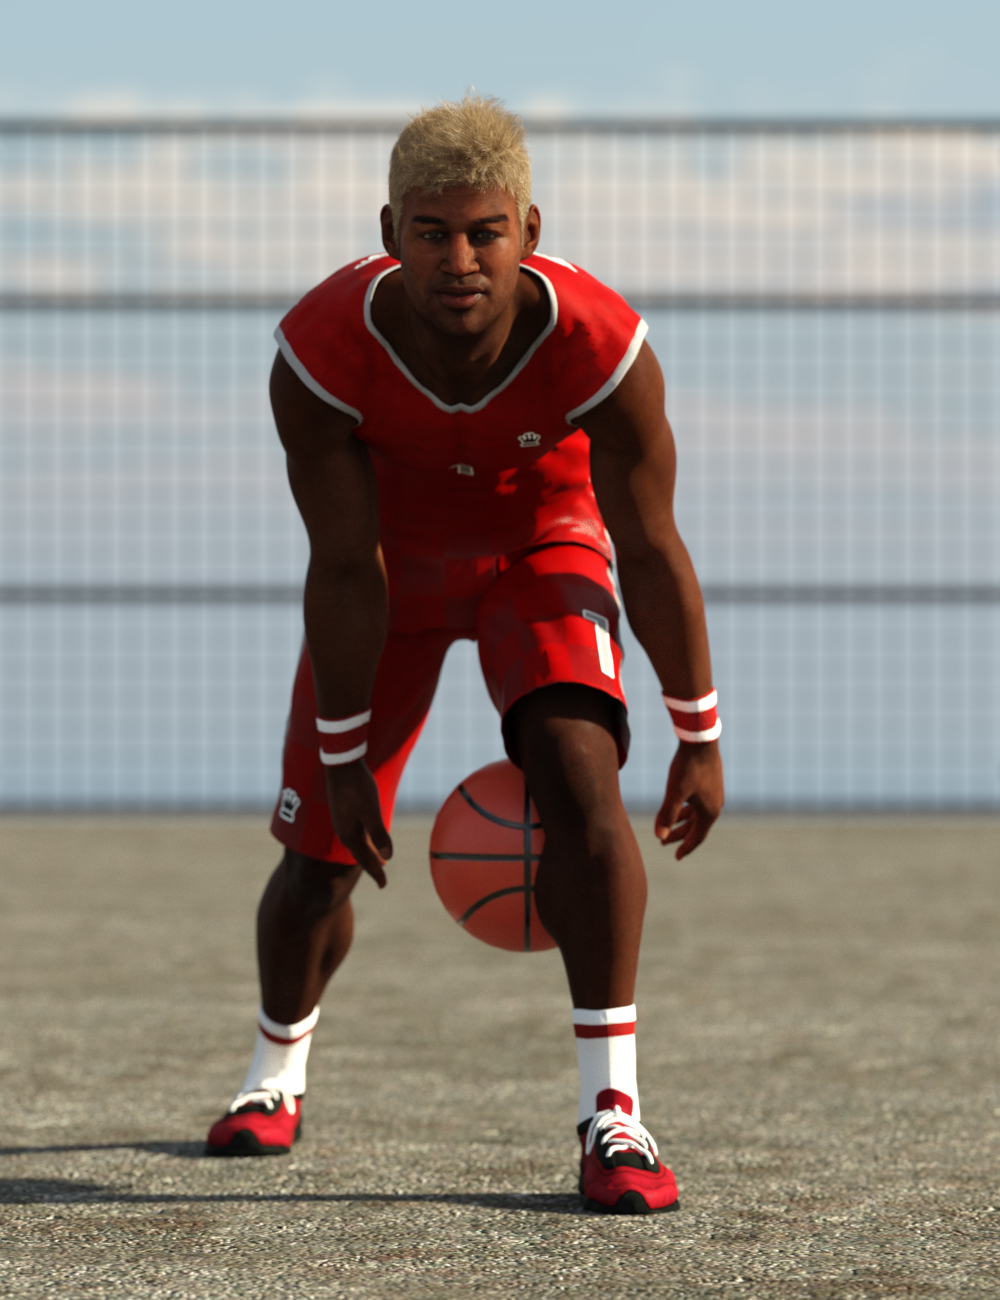 Basketball Poses for Genesis 8 and 8.1 Male by: Ensary, 3D Models by Daz 3D